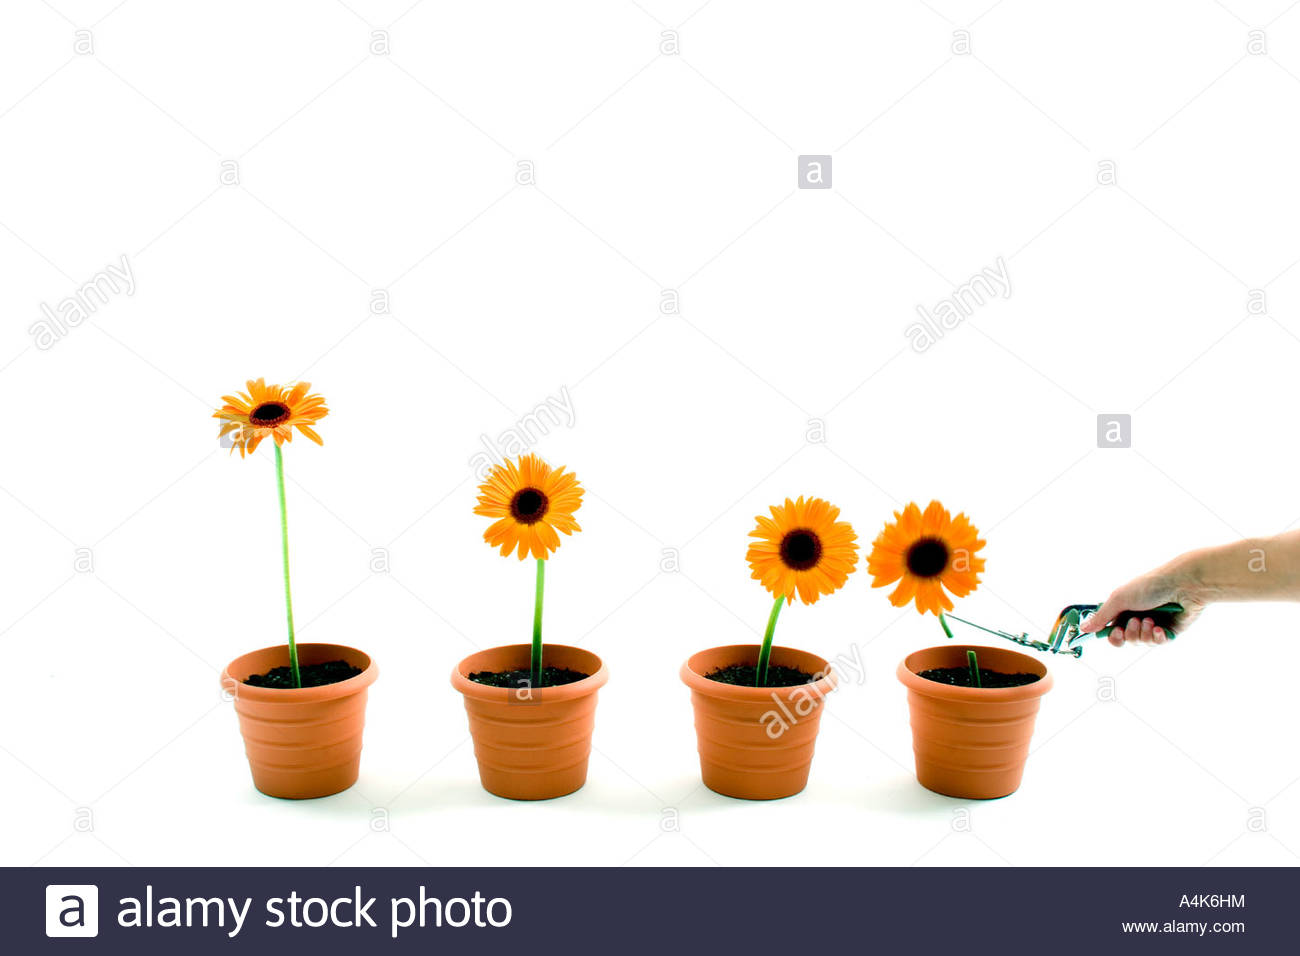 One Flower being Cut with Gardening Shears - Stock Image